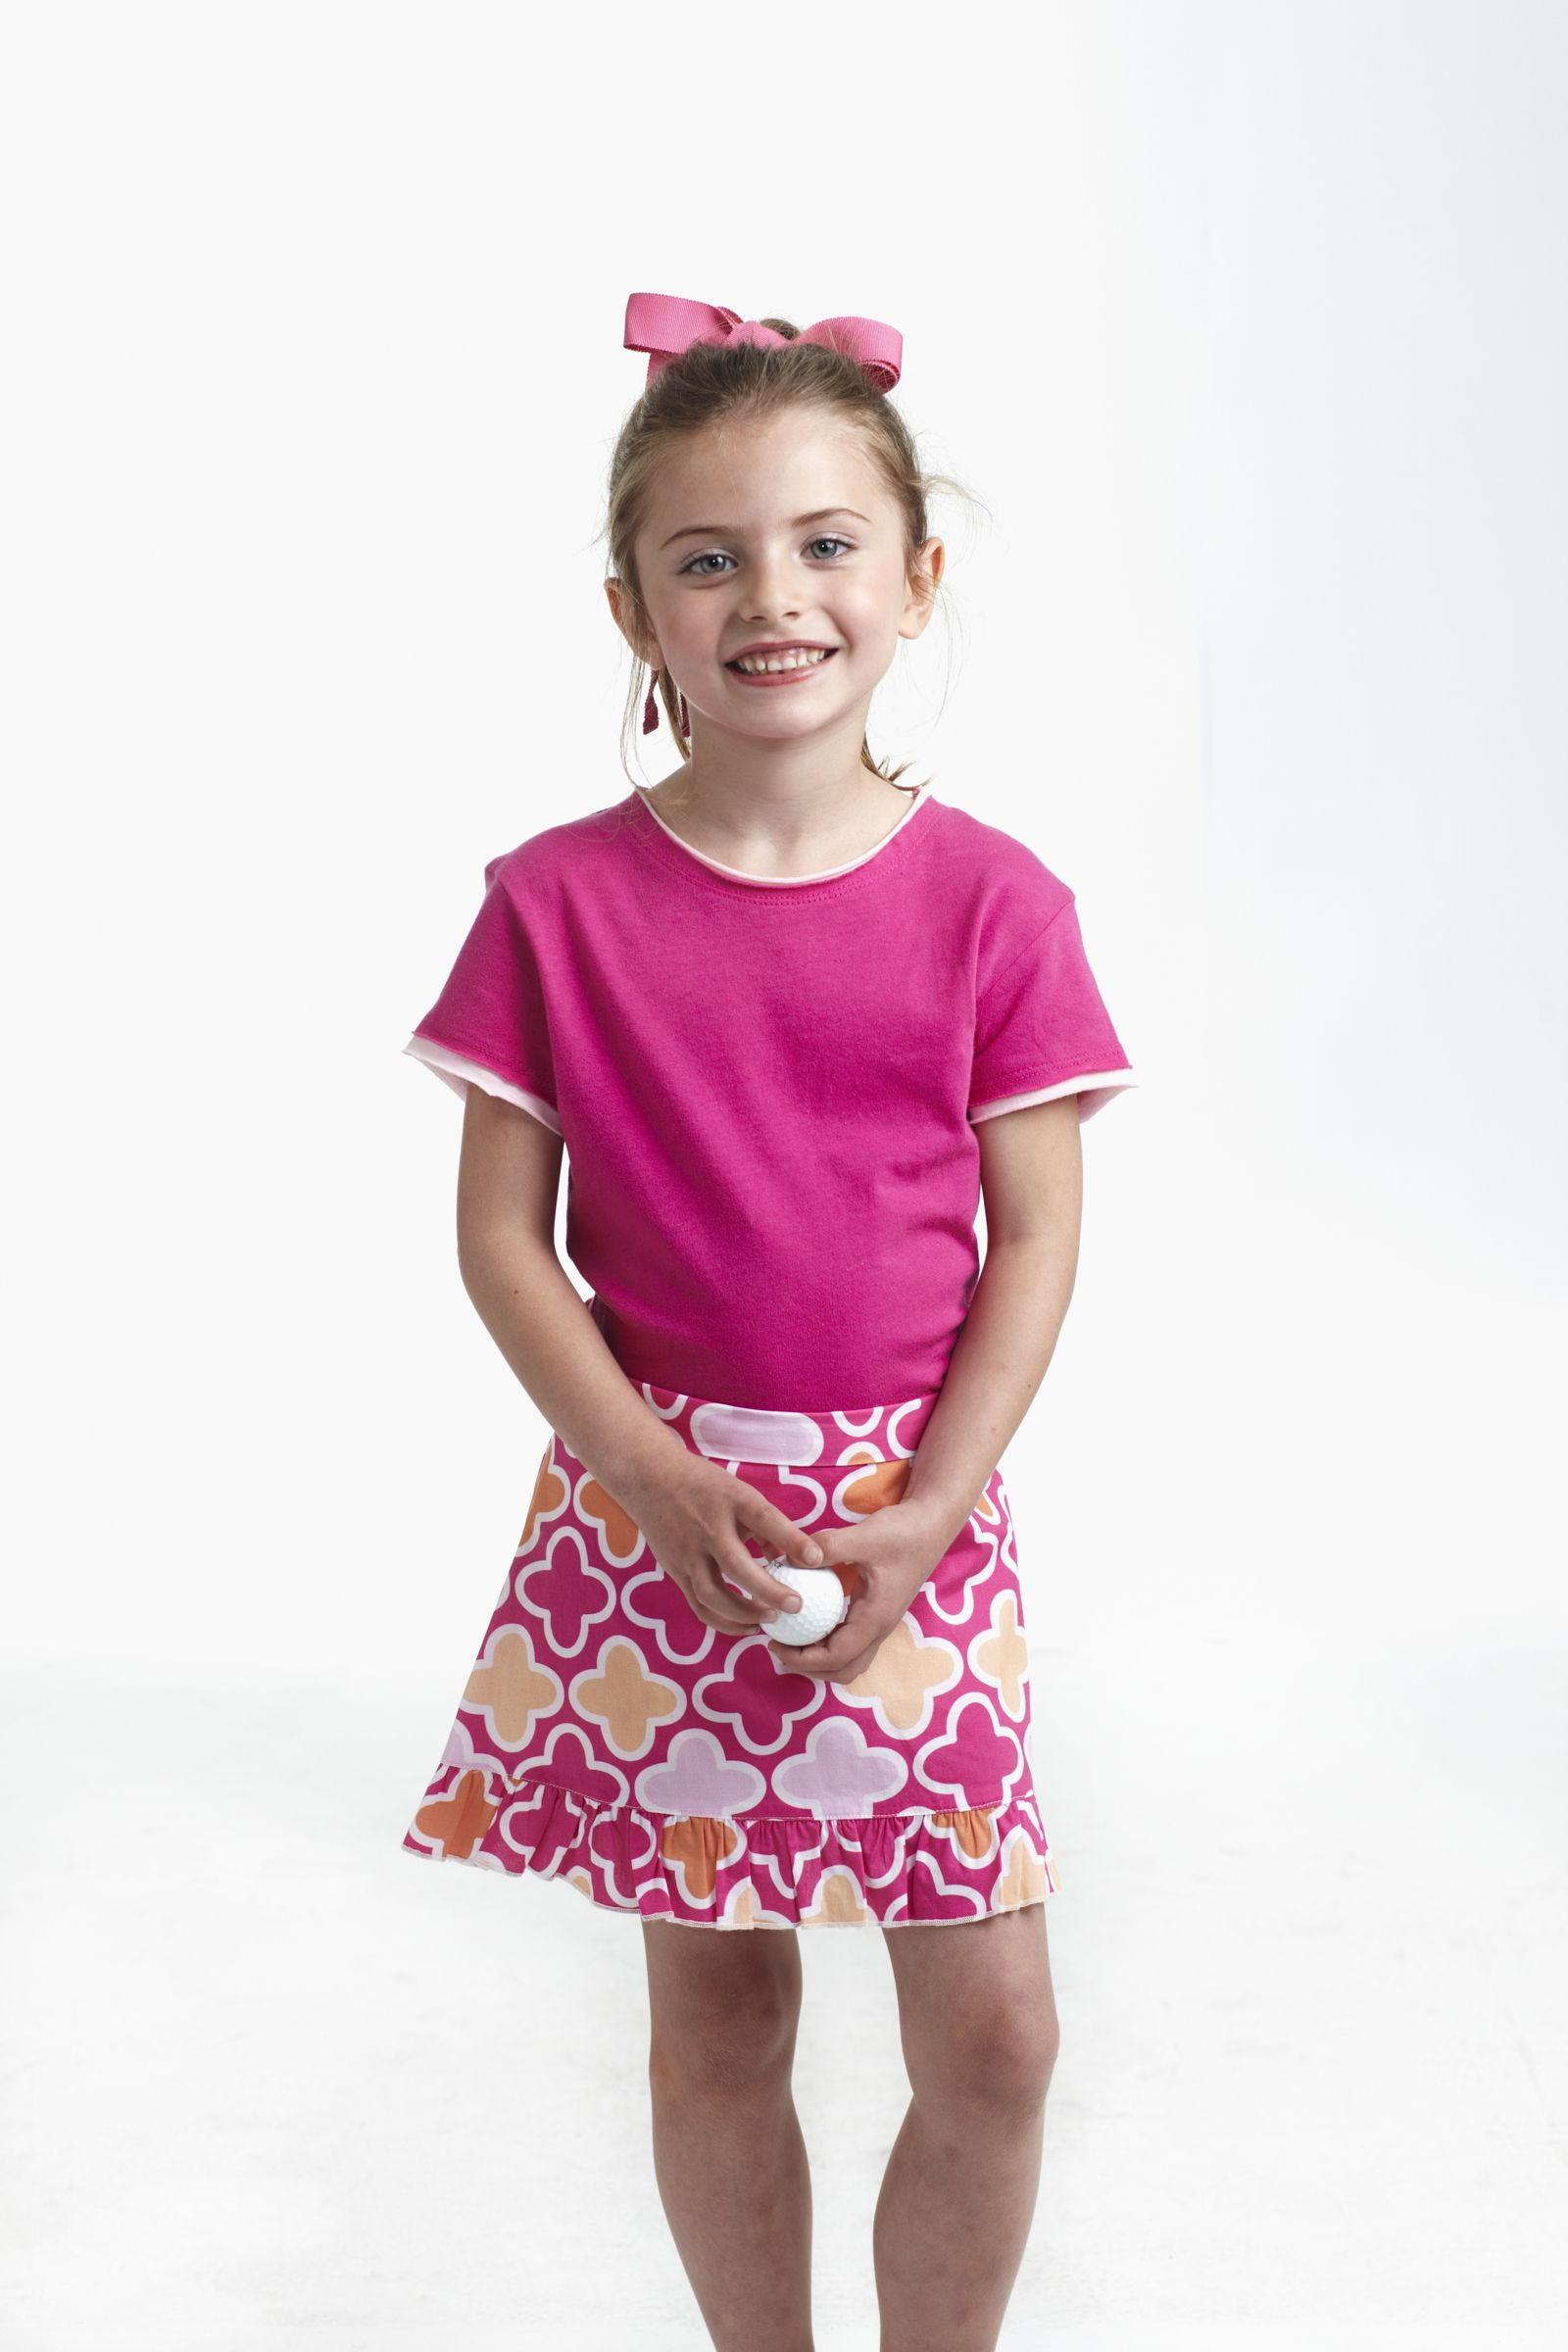 Check out our Golftini Lucky Charm Juniors Skort for $60.00